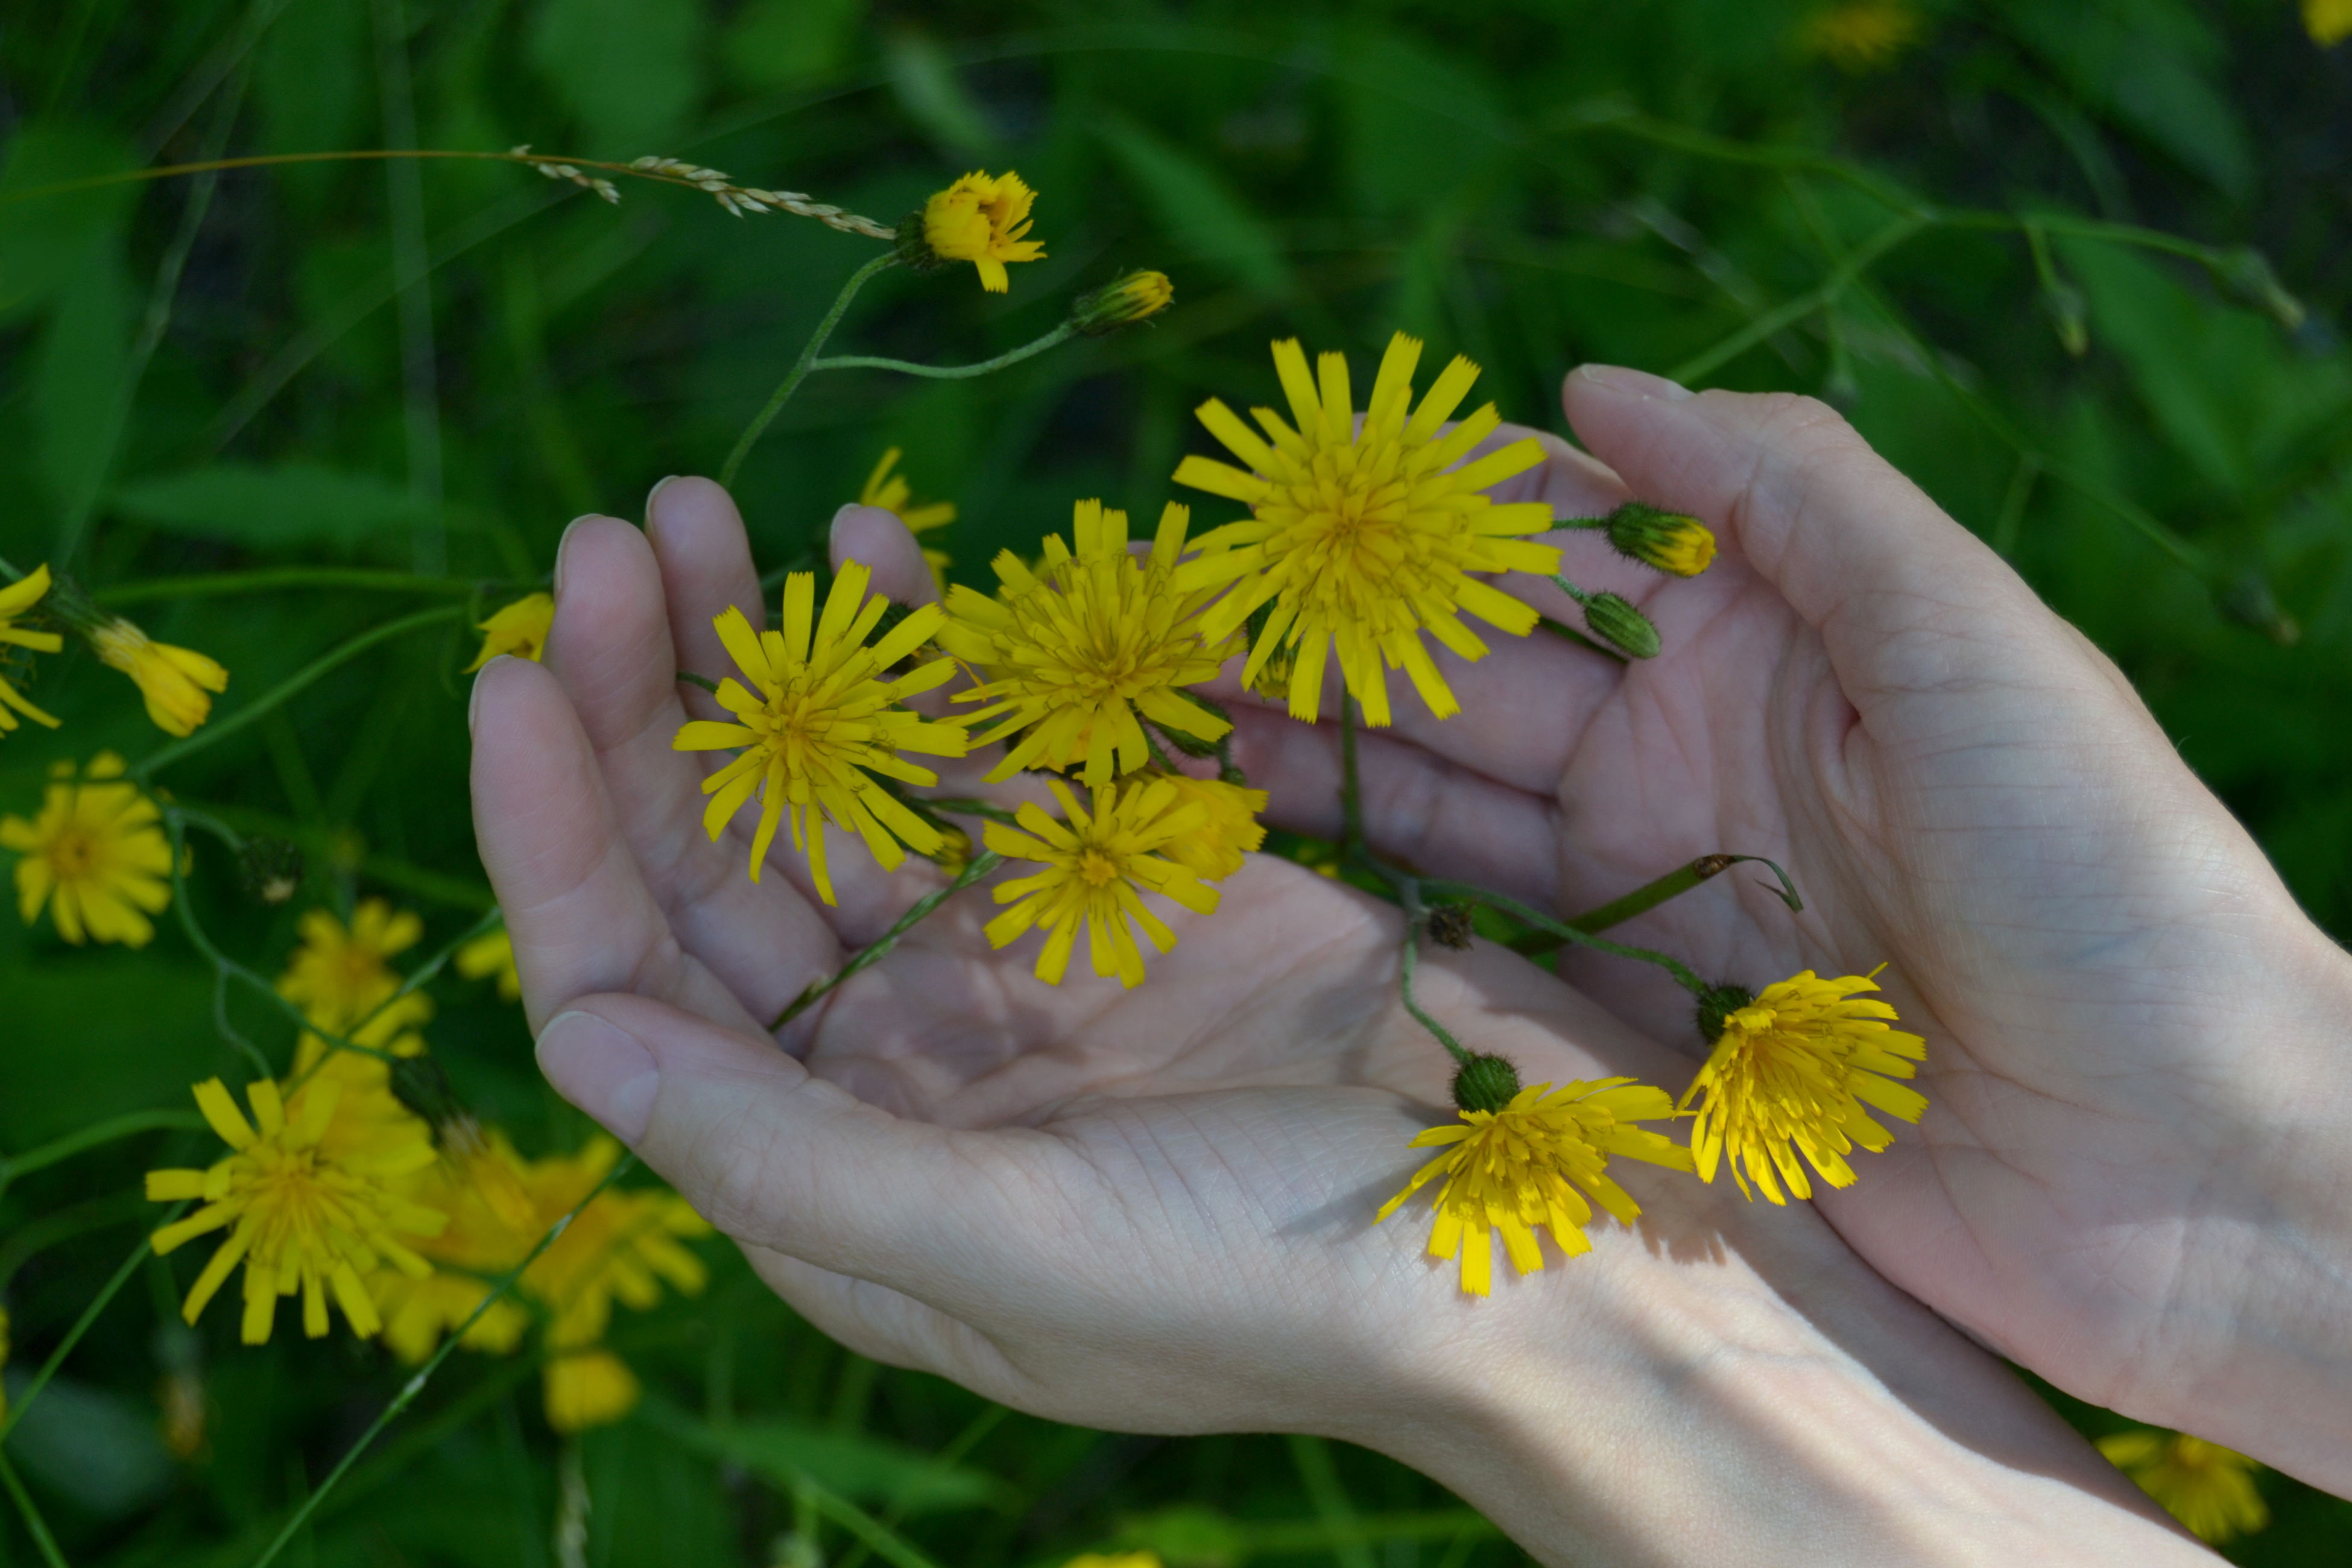 flower, human hand, human body part, real people, holding, one person, petal, fragility, flower head, nature, beauty in nature, plant, freshness, outdoors, growth, day, green color, close-up, leaf, yellow, lifestyles, blooming, people